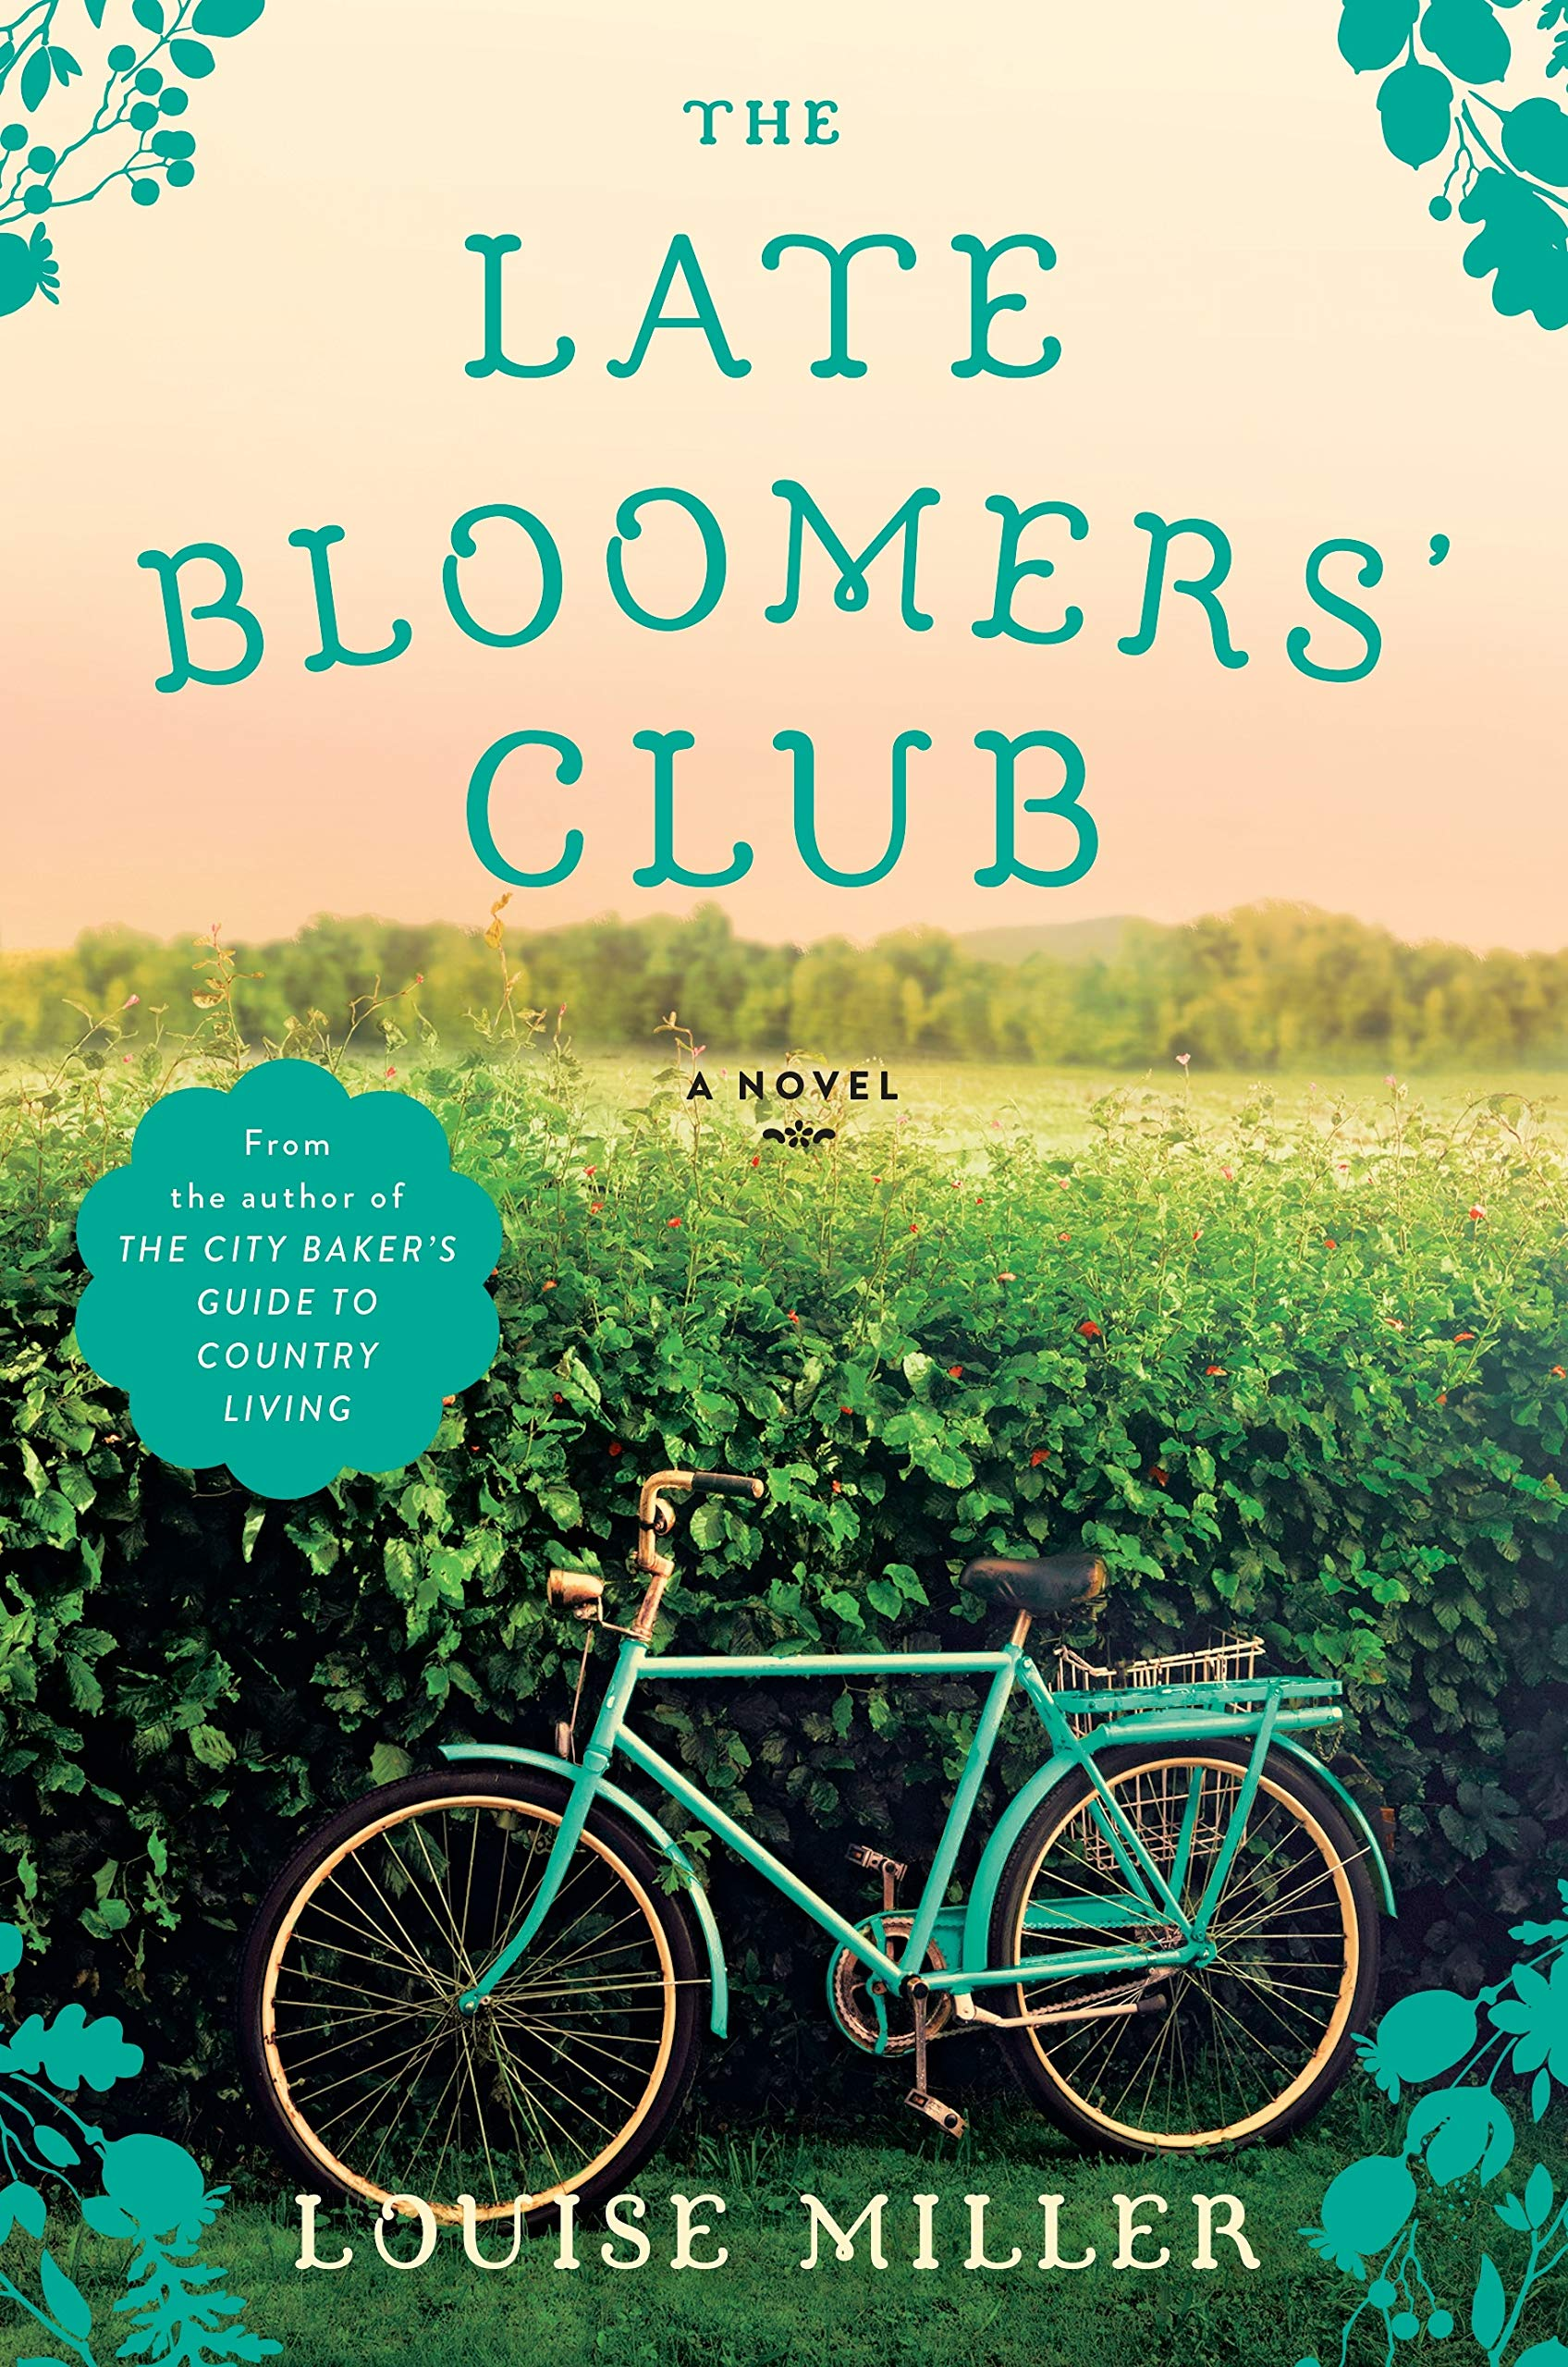 The Late Bloomers' Club by Louise Miller - When Jen and I were discussing a potential book review for her to do last month, she mentioned The Late Bloomers' Club by Louise Miller. The way she described the book was so good, I immediately jumped on my Libby app to borrow it from my library… only to find my library didn't have it! I've put in a request for the library to get a copy (don't spend your own money on things when you don't have to, folks!) and I eagerly await the day this book will be available to me. Until then, I hope you guys enjoy Jen's review of it.